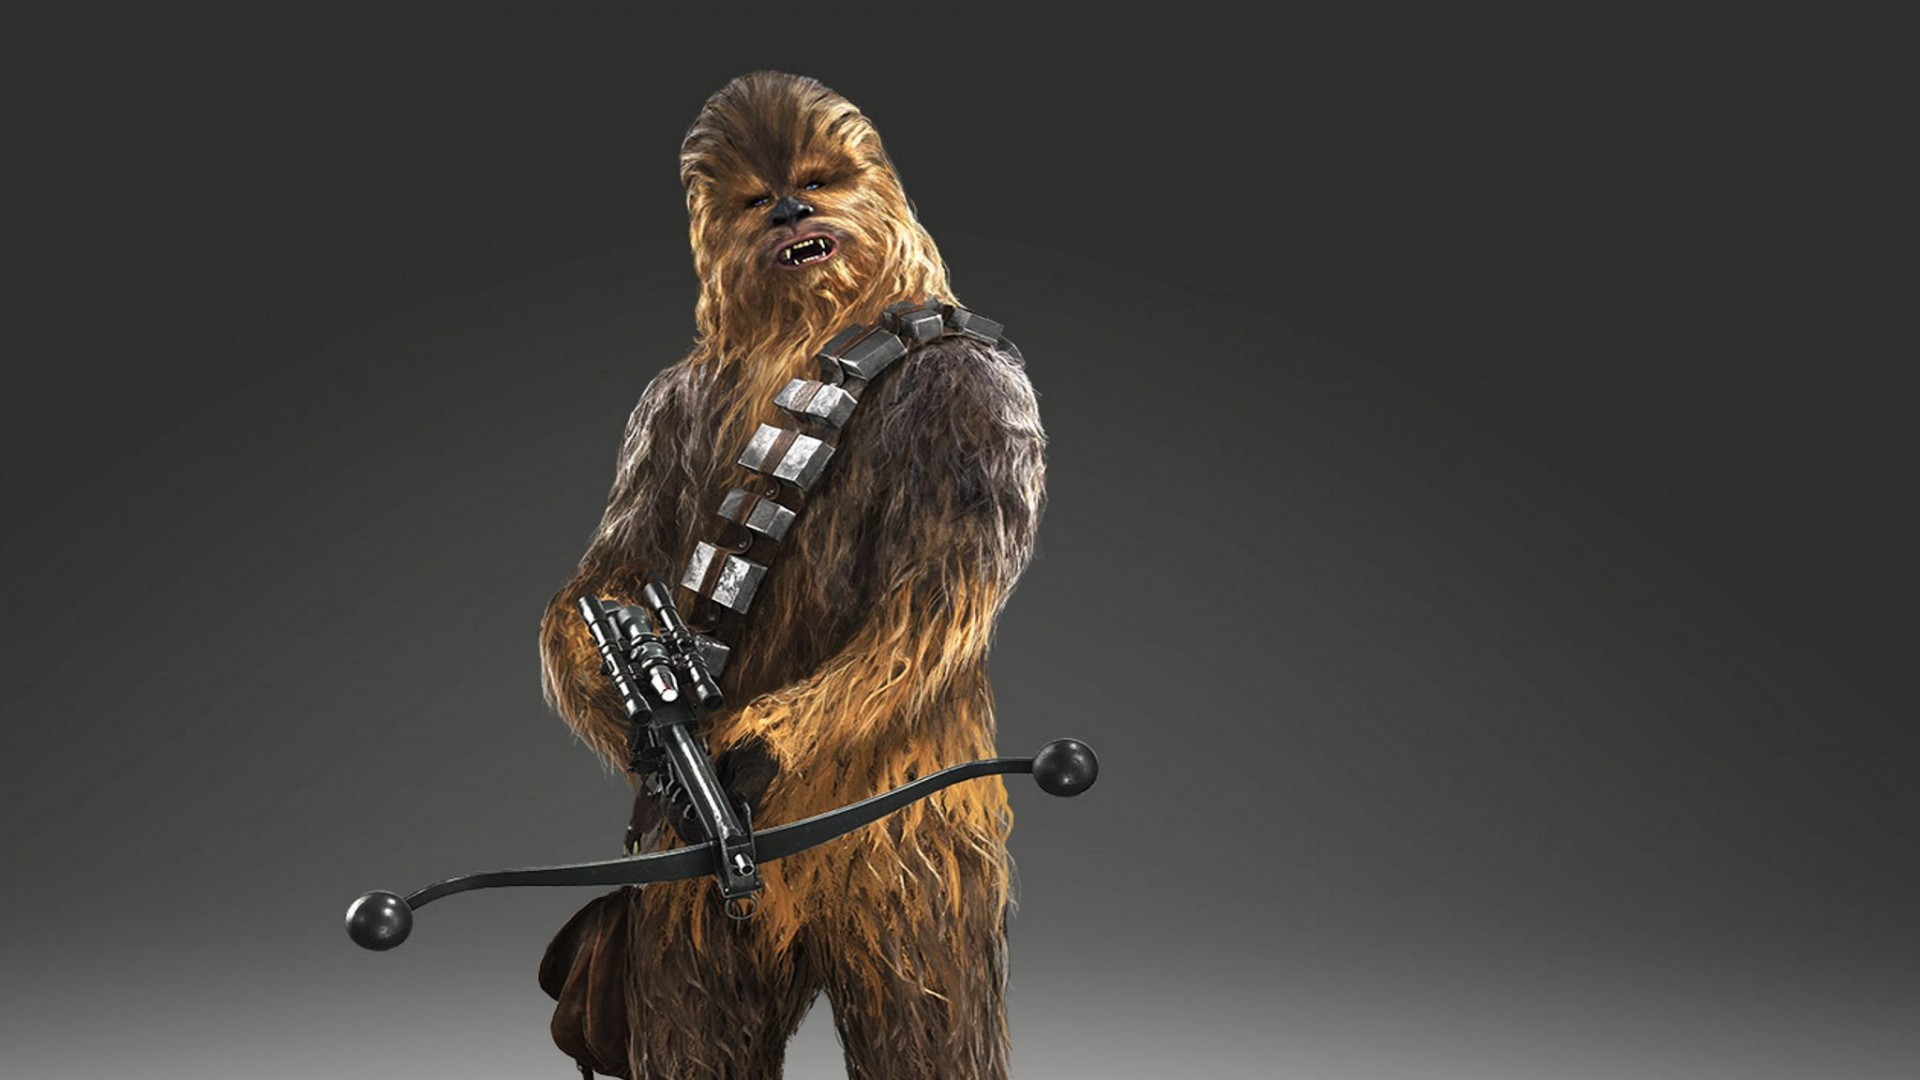 Chewbacca Wallpapers 67 Background Pictures